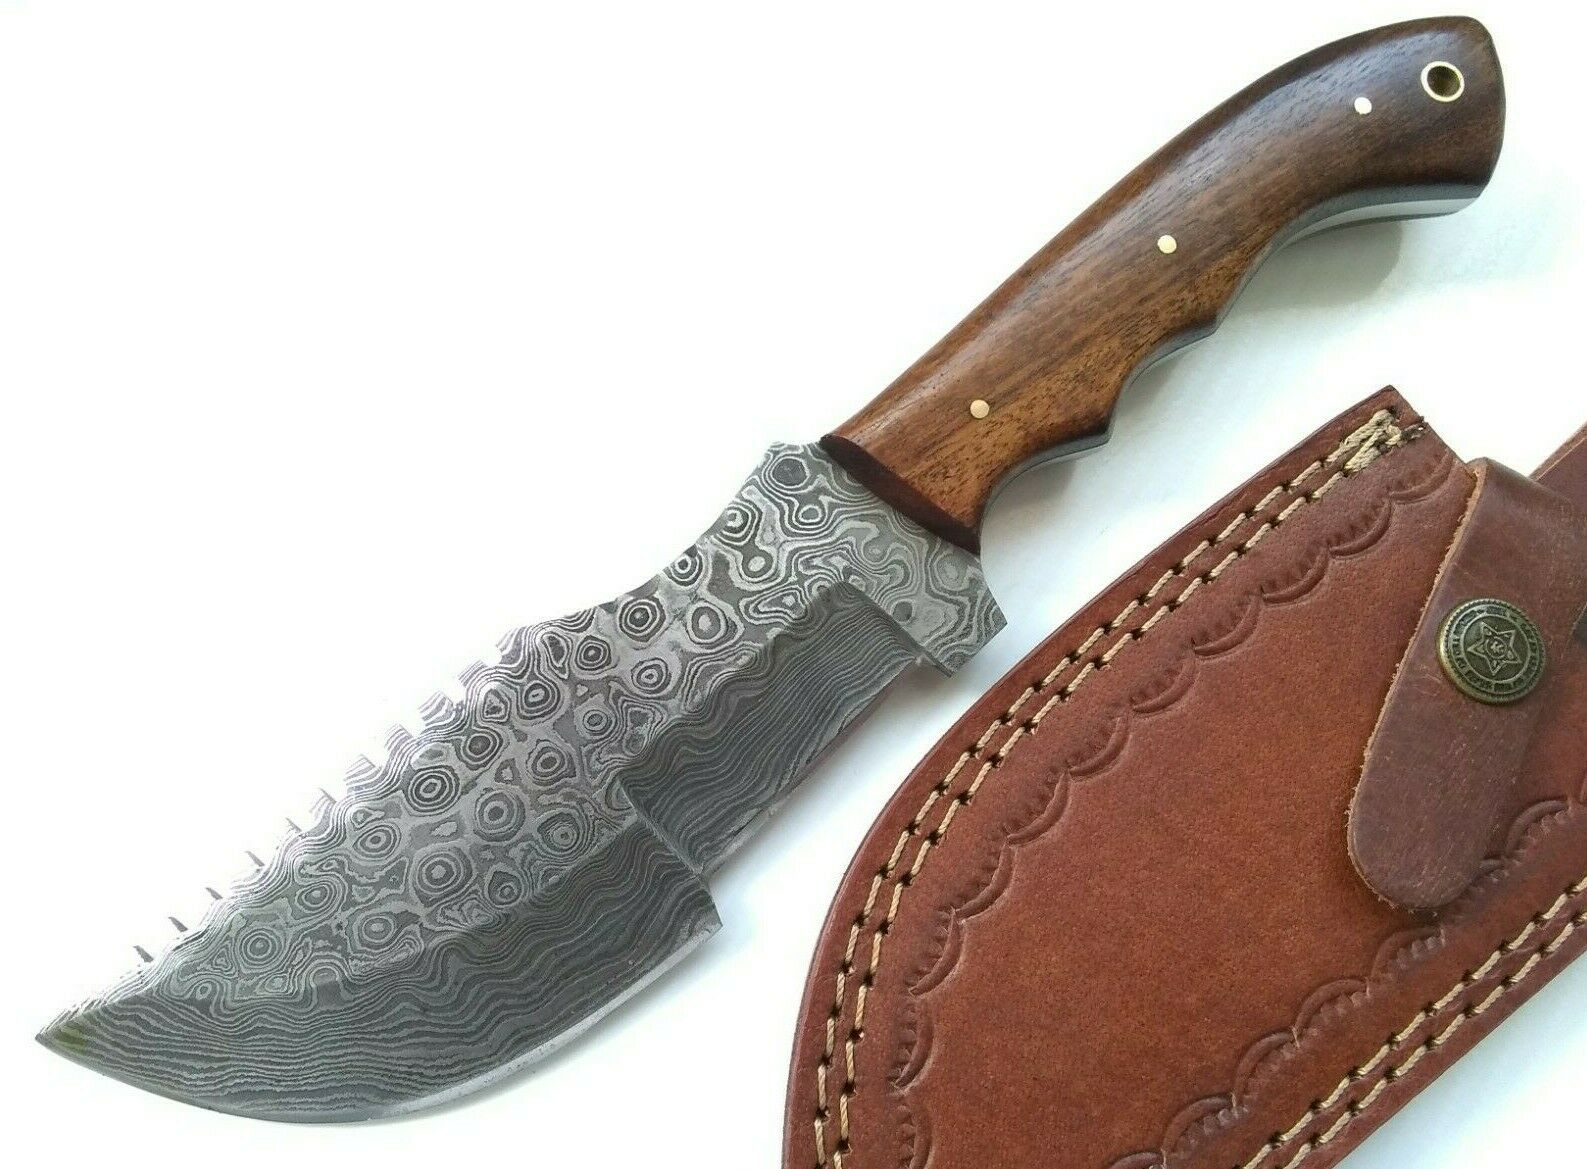 1095 & 5N20 High and Low Carbon Steel Damascus Hunted Movie Replica Tom Brown Tracker T-3 Huntsman Fixed Blade Knife w/ Sheath